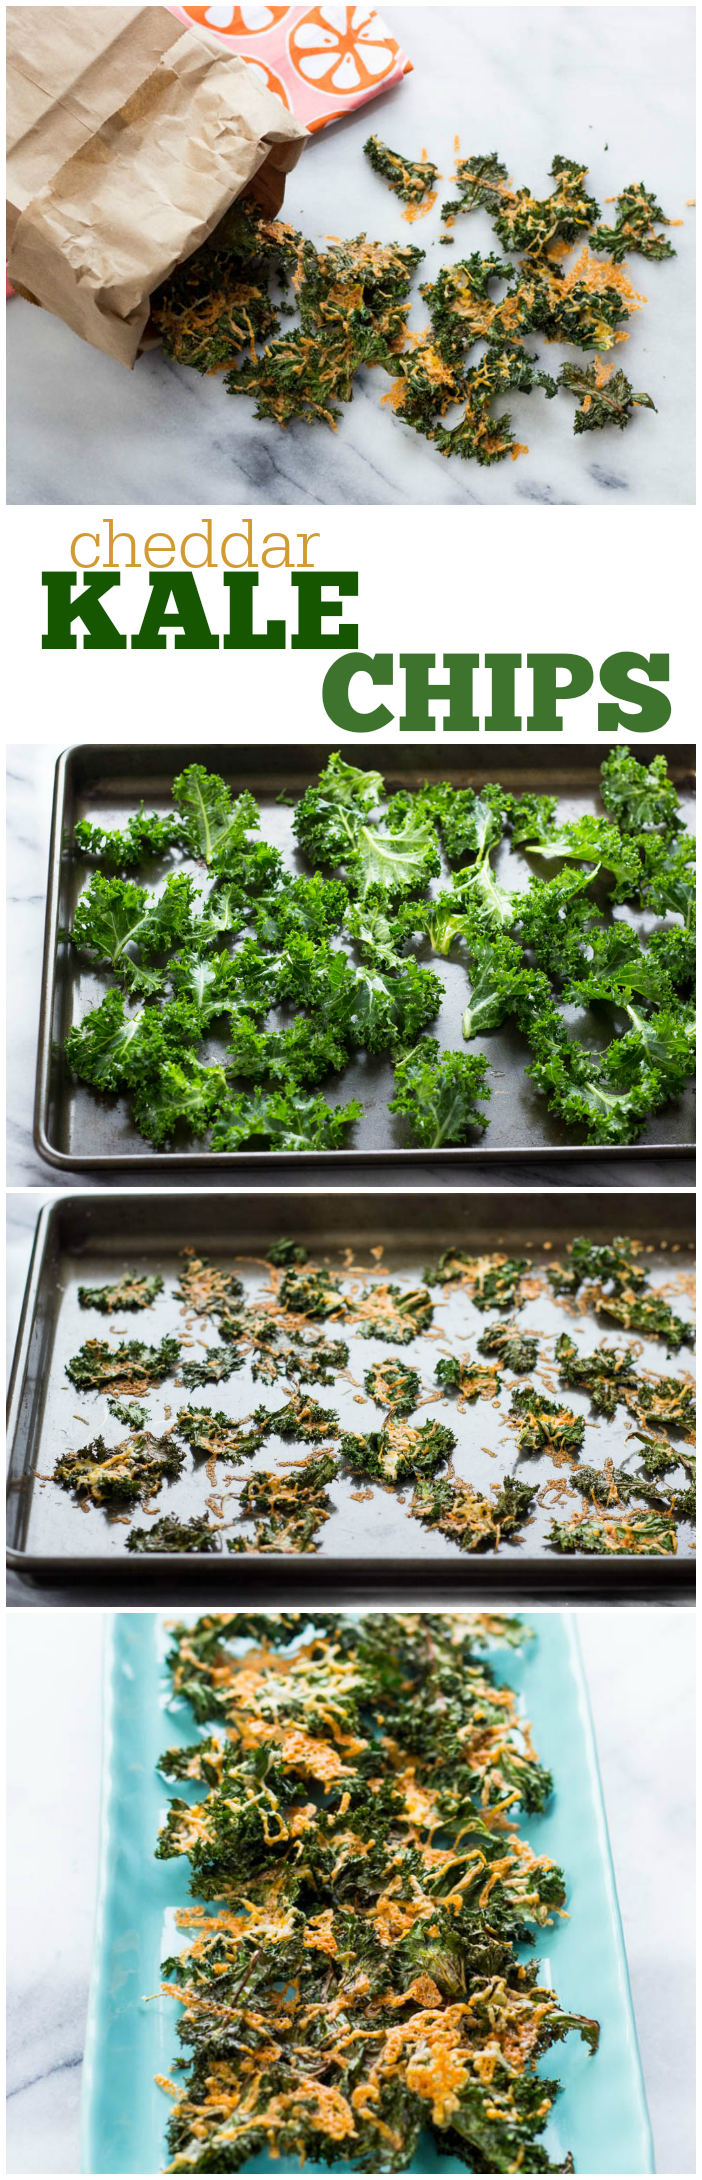 Baked Cheddar Kale Chips #quick #easy #healthy #cheesy